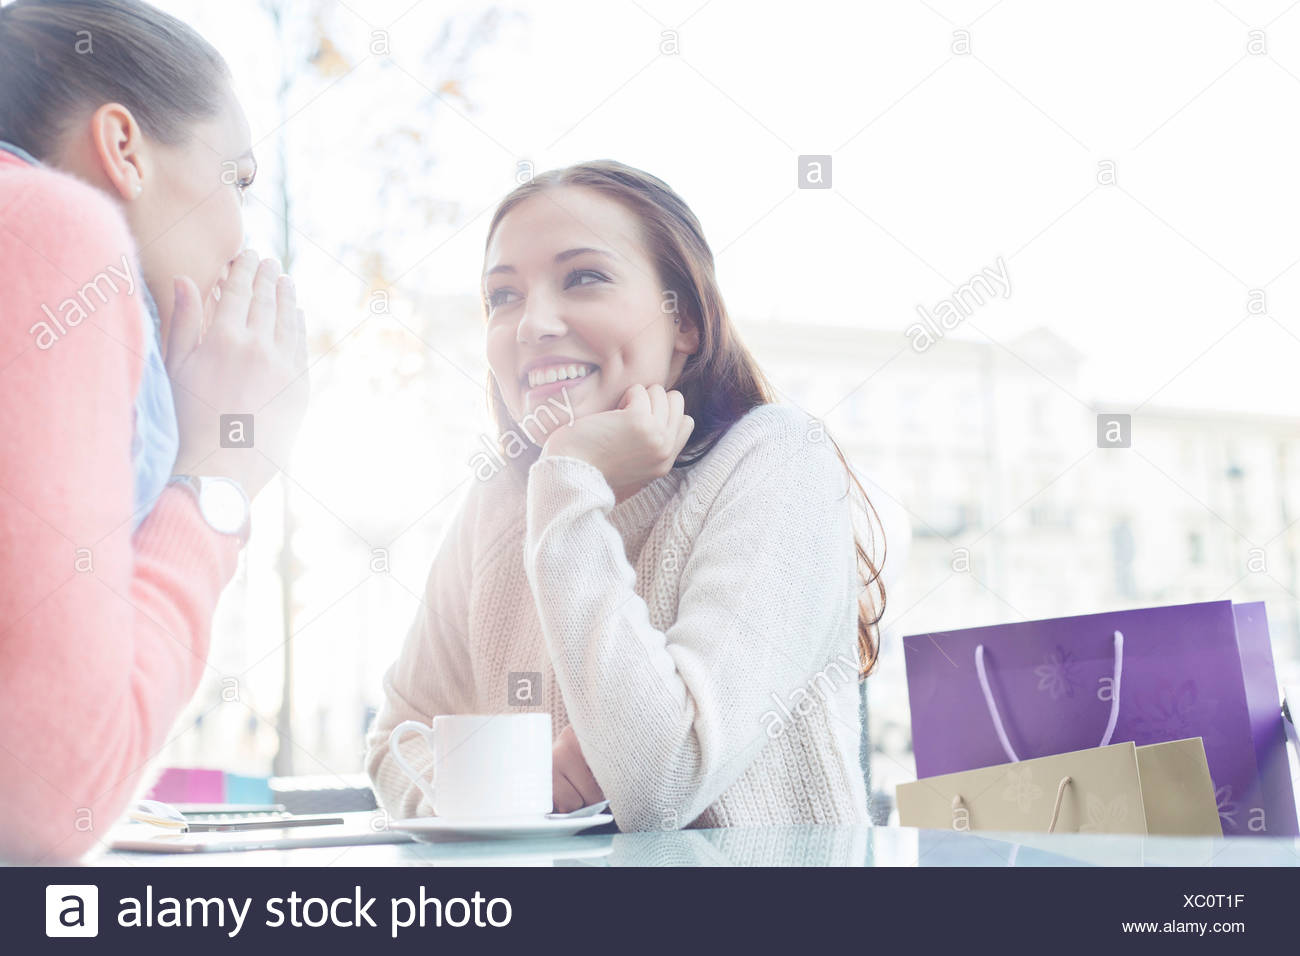 Beautiful young woman looking at friend sharing secrets at outdoor cafe - Stock Image